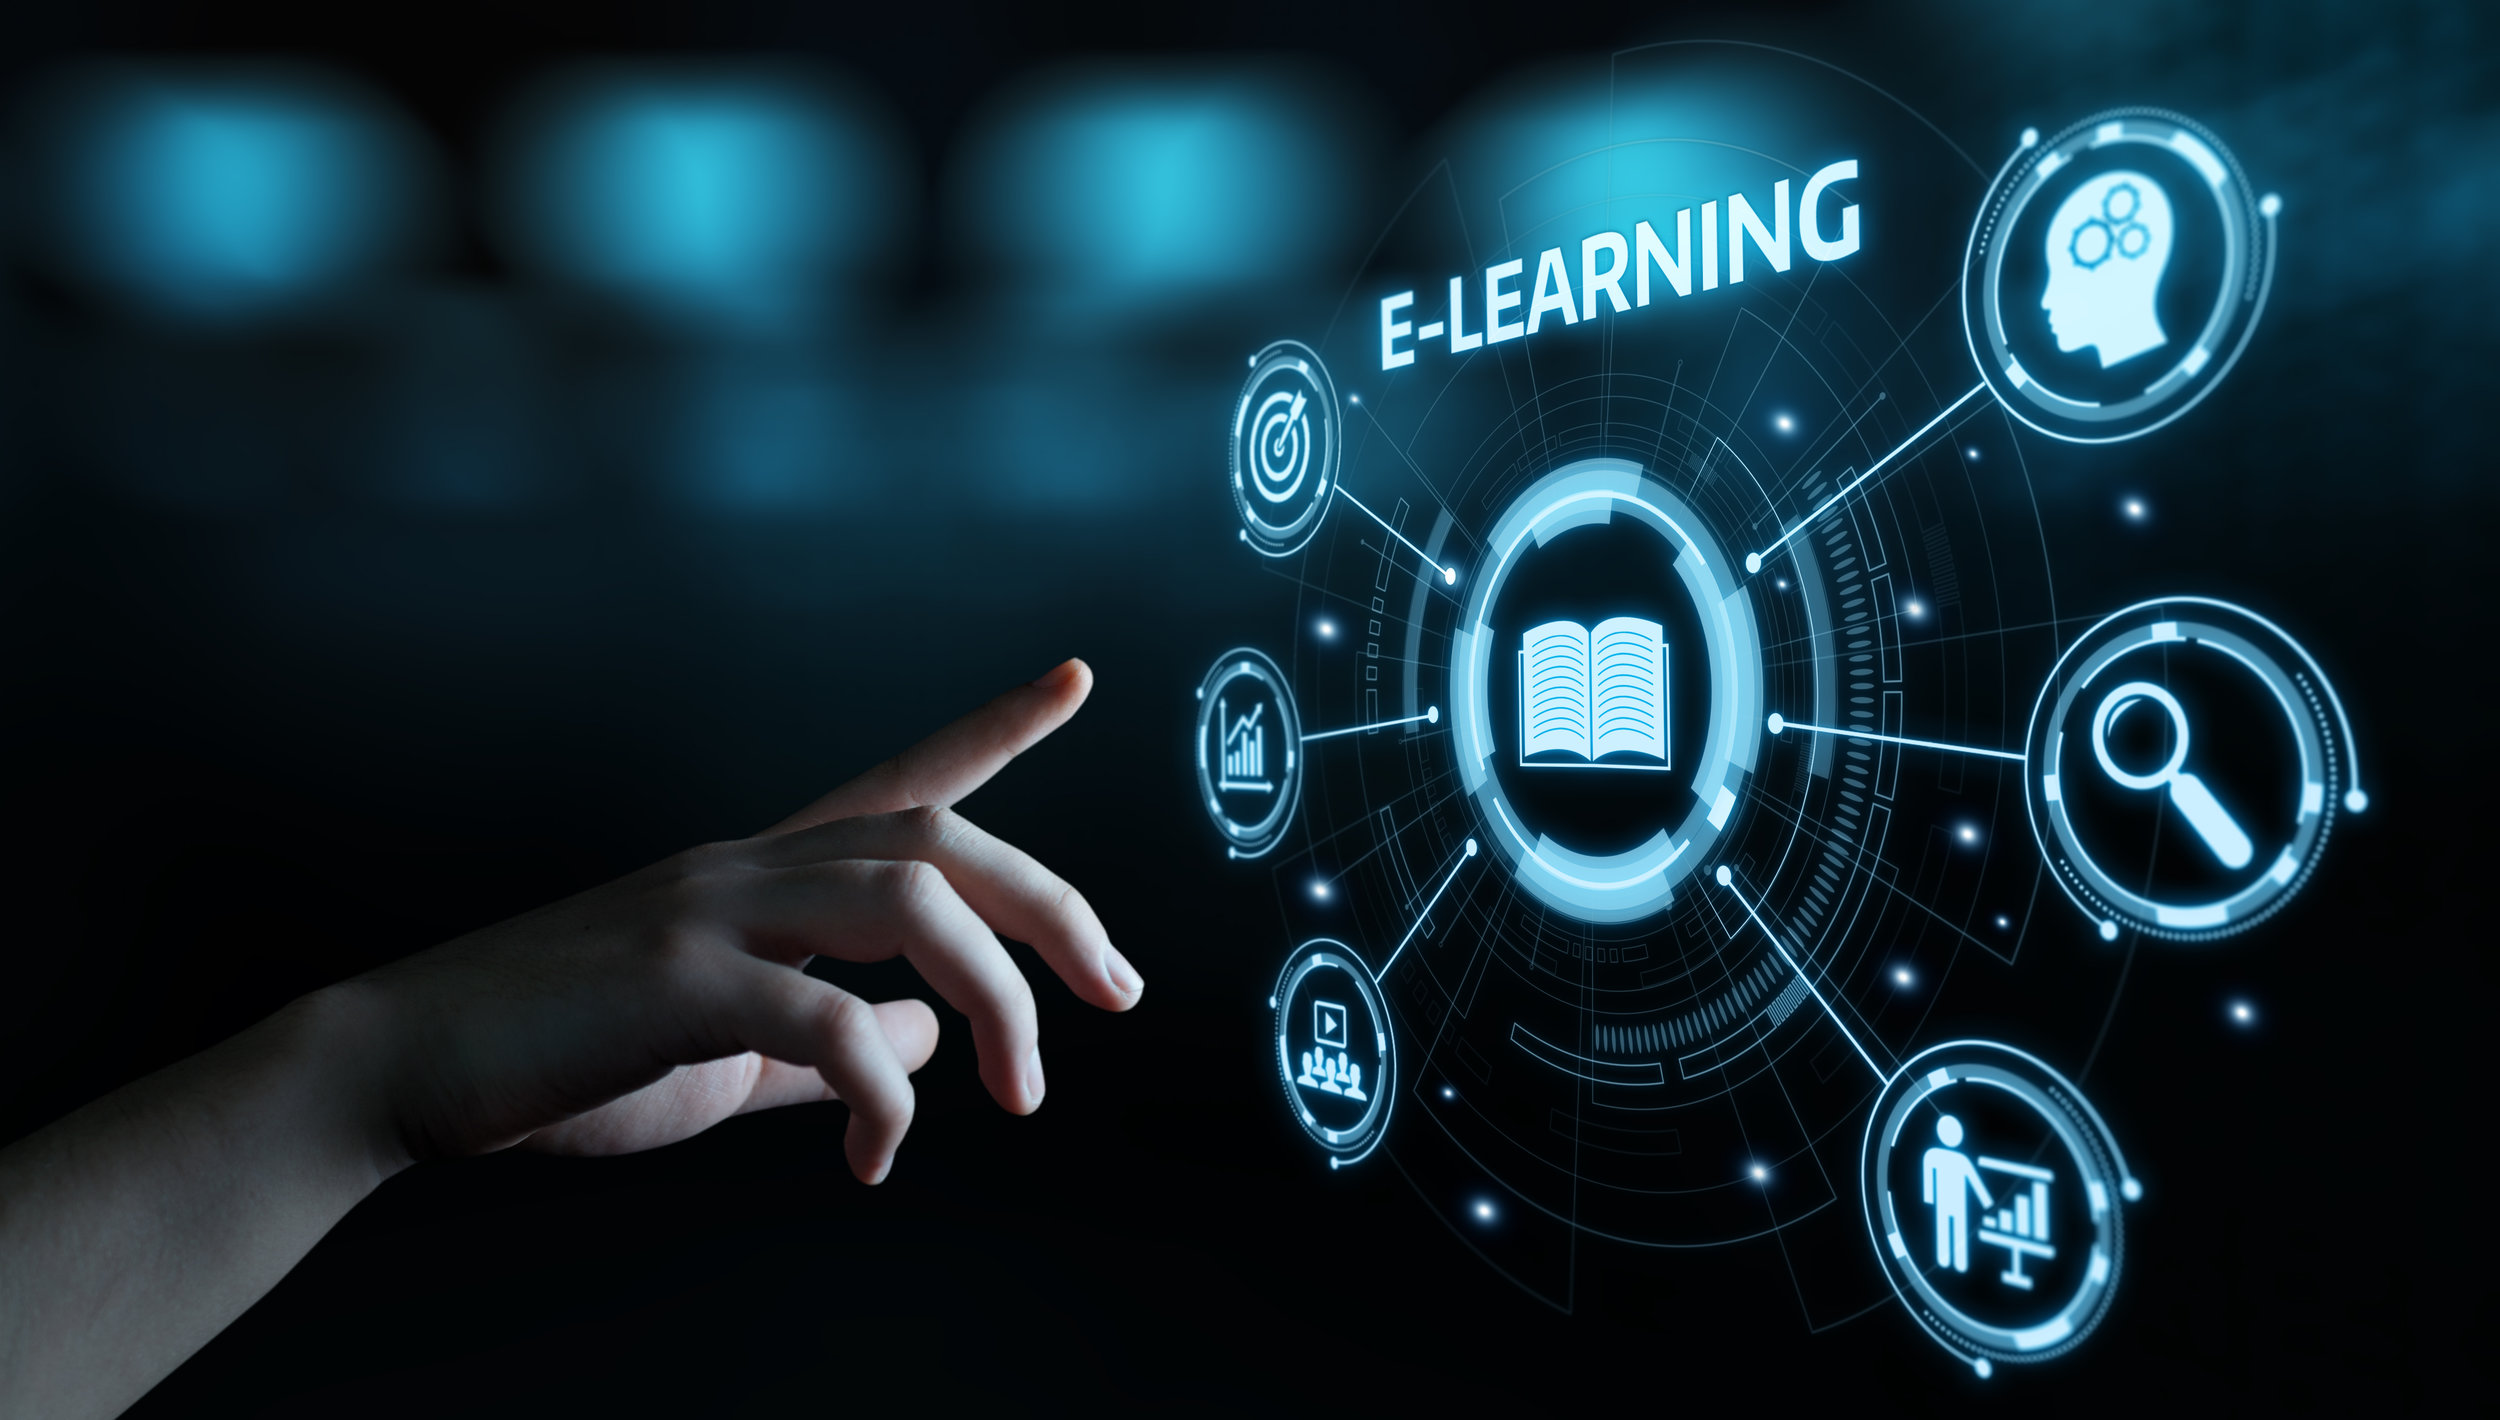 Elearning can improve your knowledge retention.